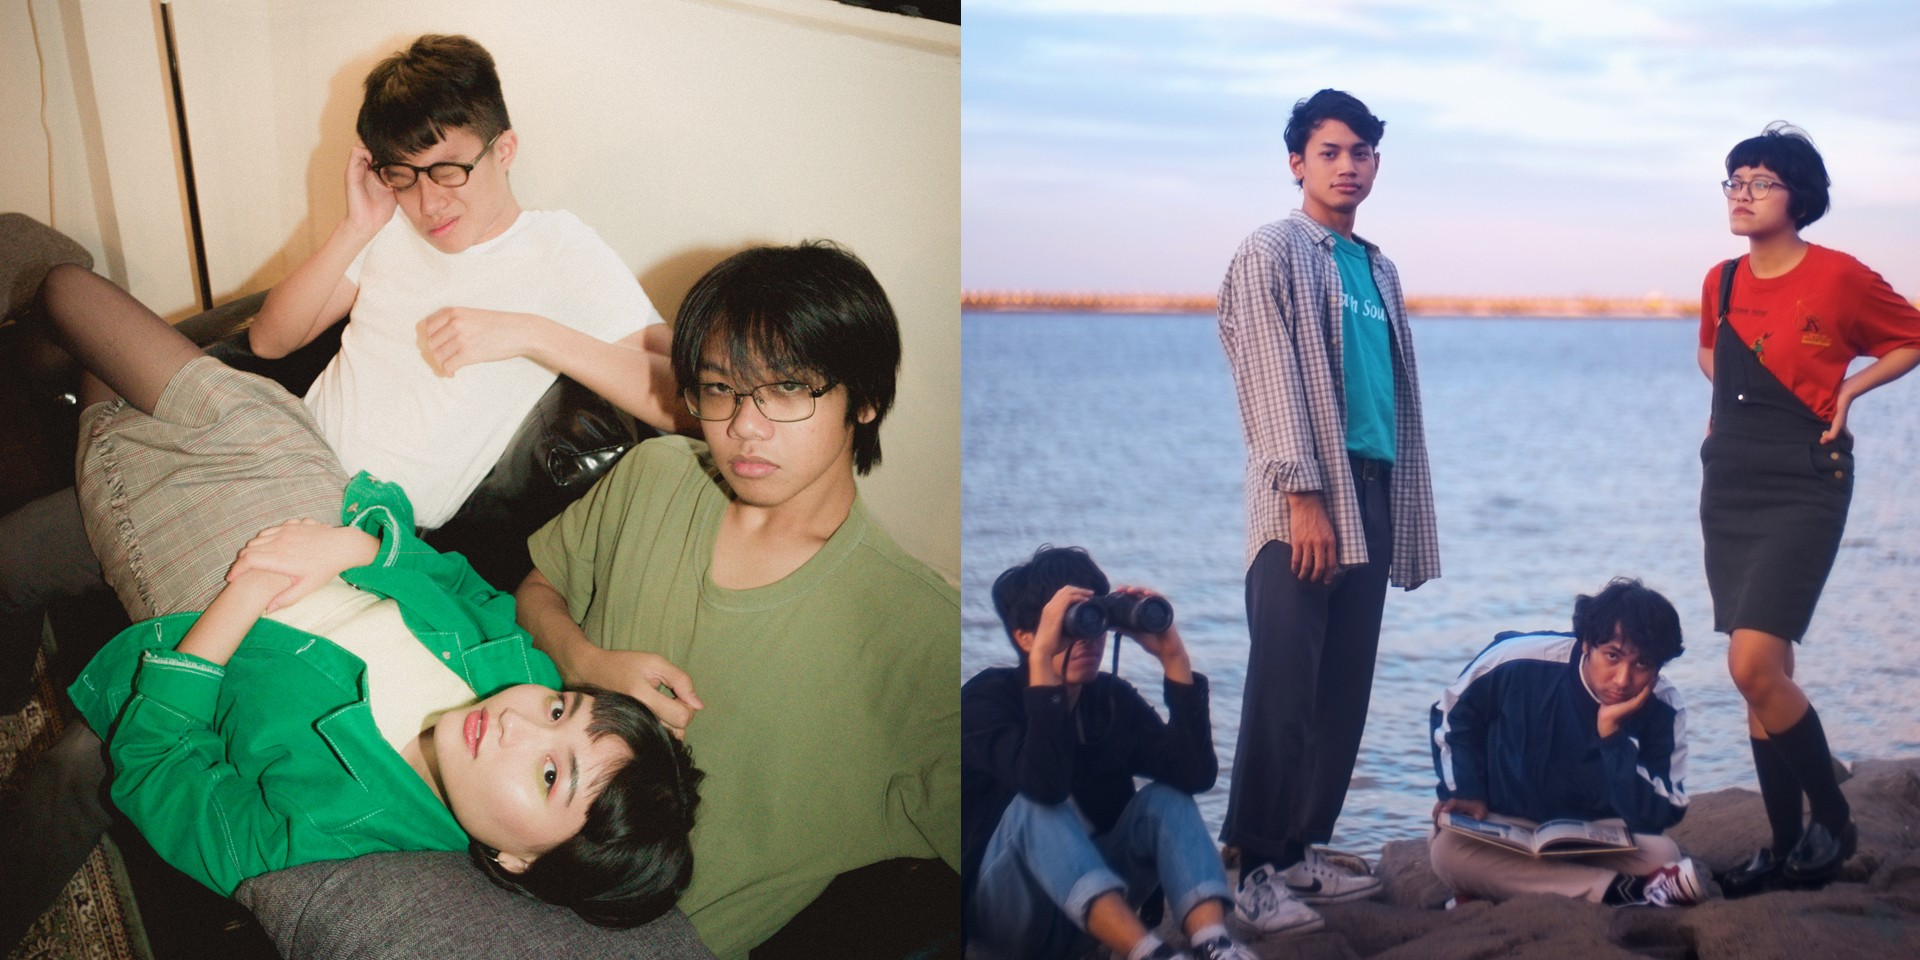 Sobs to launch new album at gig with bands from Indonesia's Kolibri Rekords